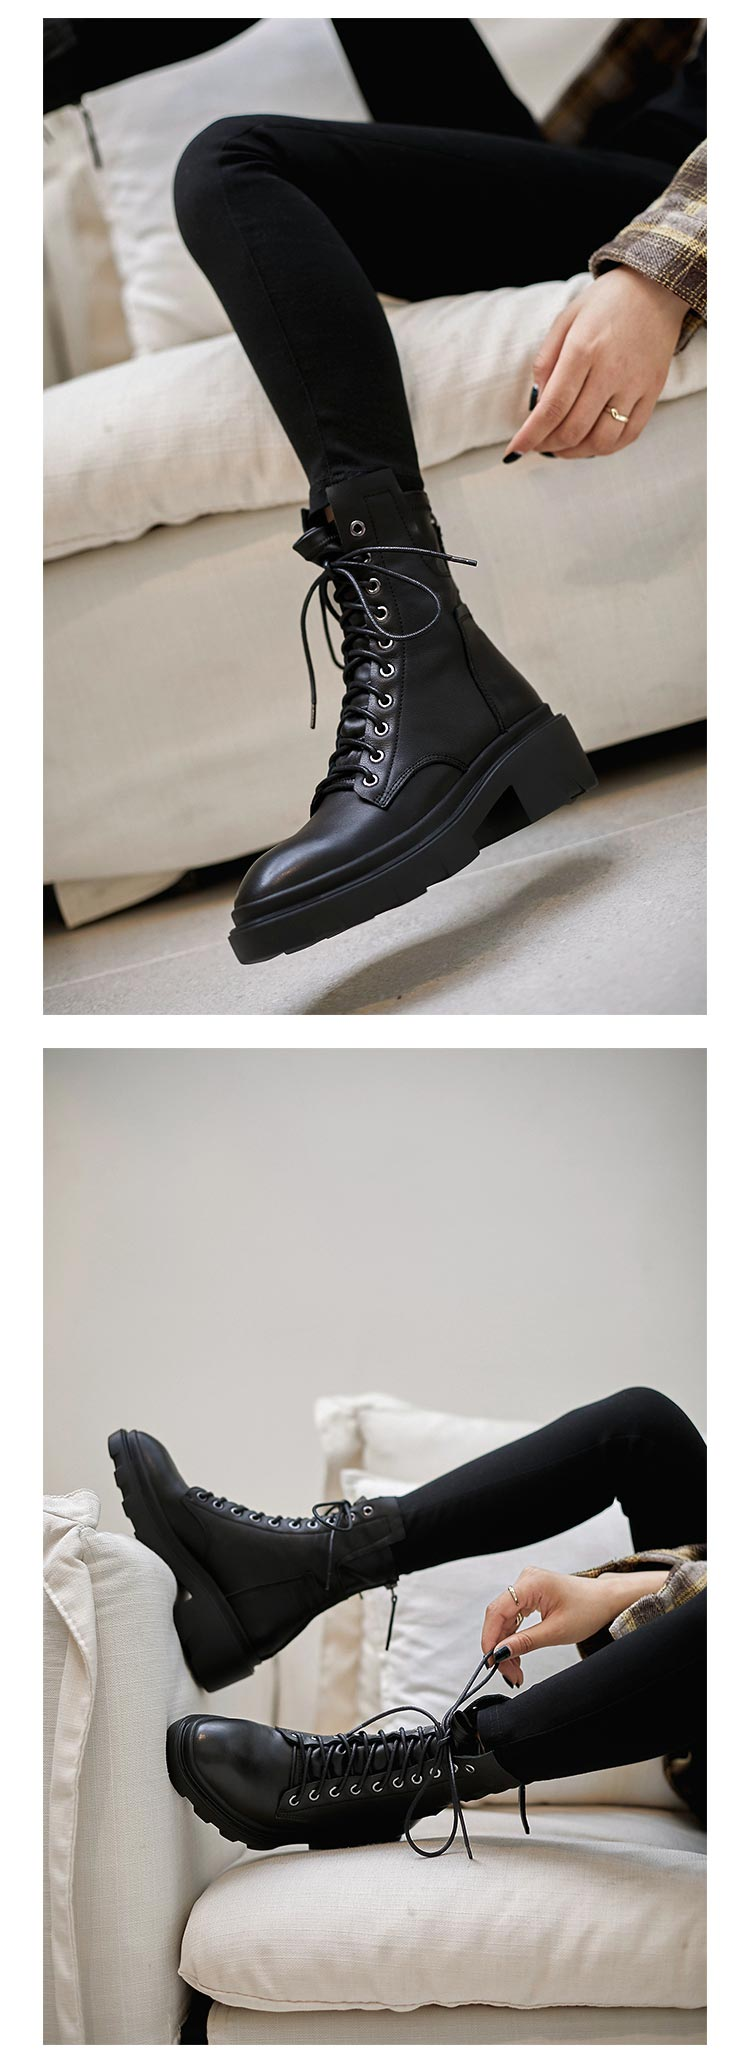 Calethy Shoes Martin Boots